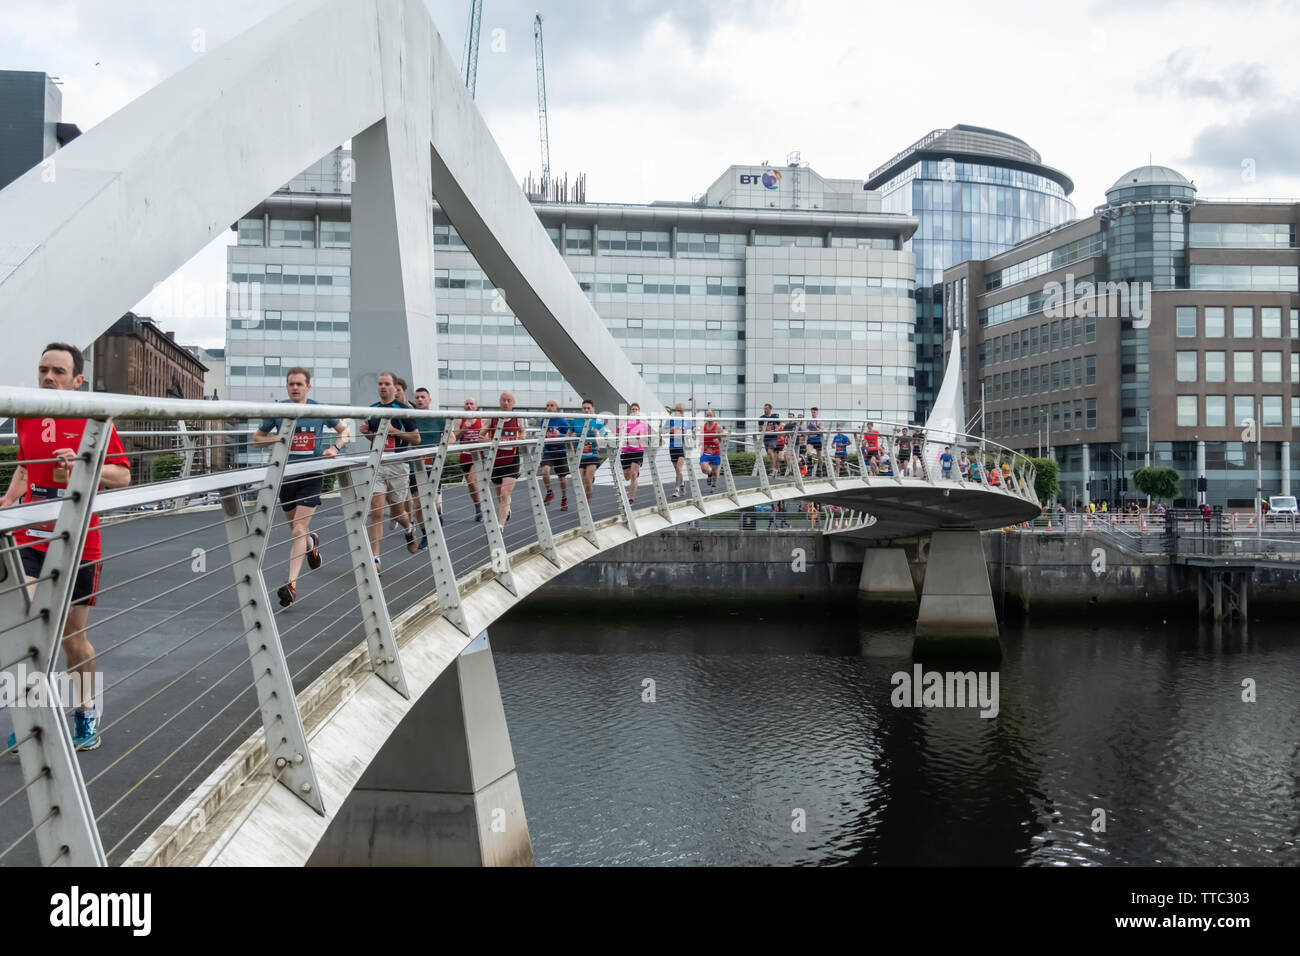 Glasgow, Scotland, UK. 16th June, 2019. Runners crossing the Tradeston Bridge during the Men's 10K Run which has been an annual event since 2004. Thousands of runners take to the streets of the city to get fit, fundraise, and raise awareness of men's health issues. The run coincides with Fathers Day and starts at the Riverside Museum and  finishes at George Square. Credit: Skully/Alamy Live News - Stock Image